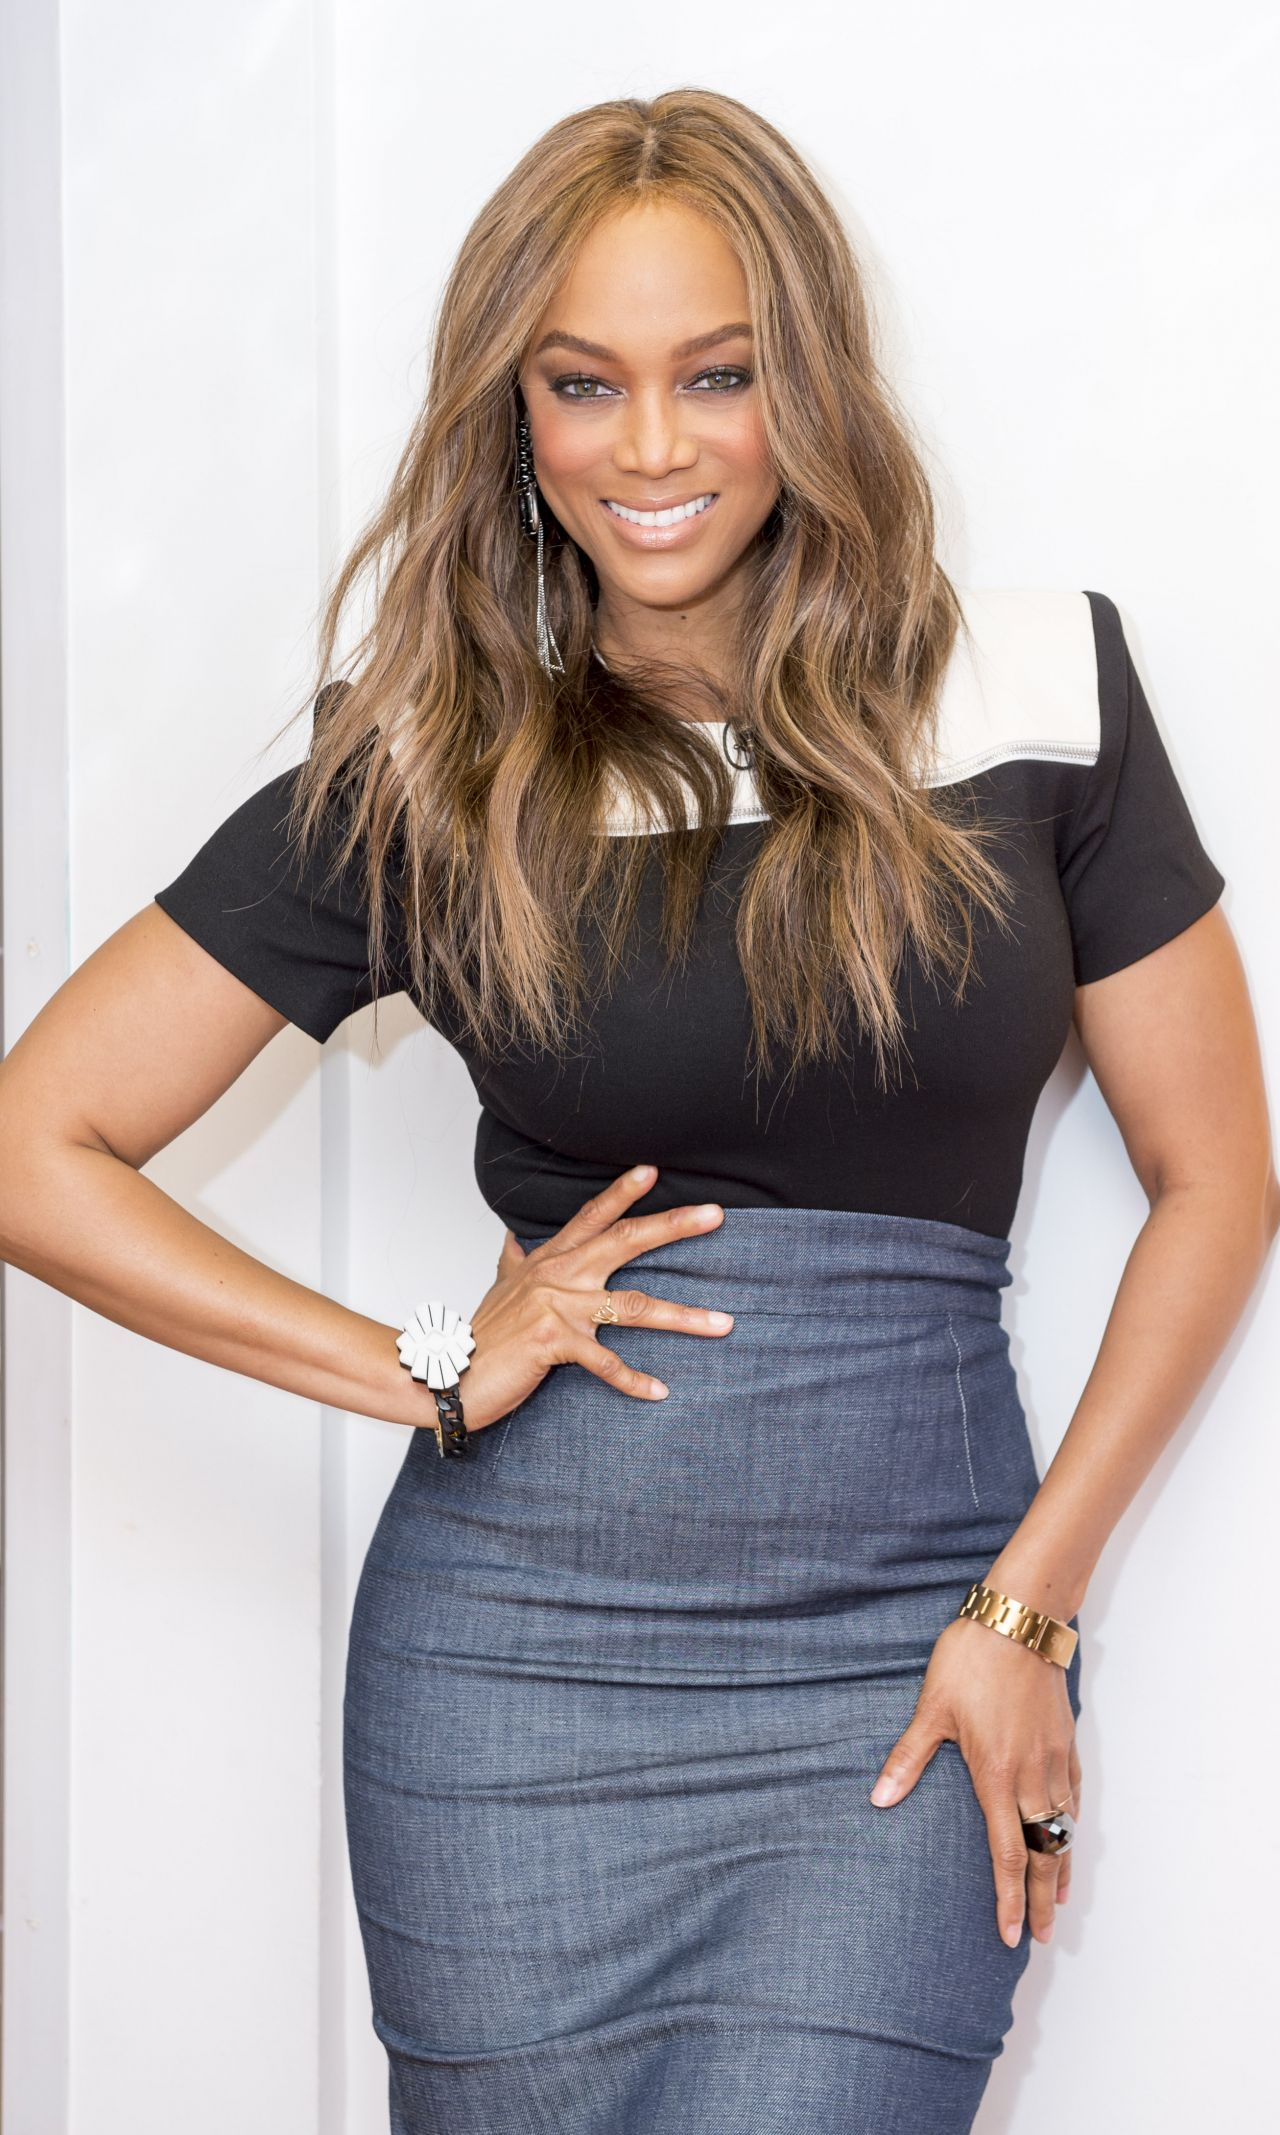 Tyra Banks Appears On Good Morning Britain 6 28 2016